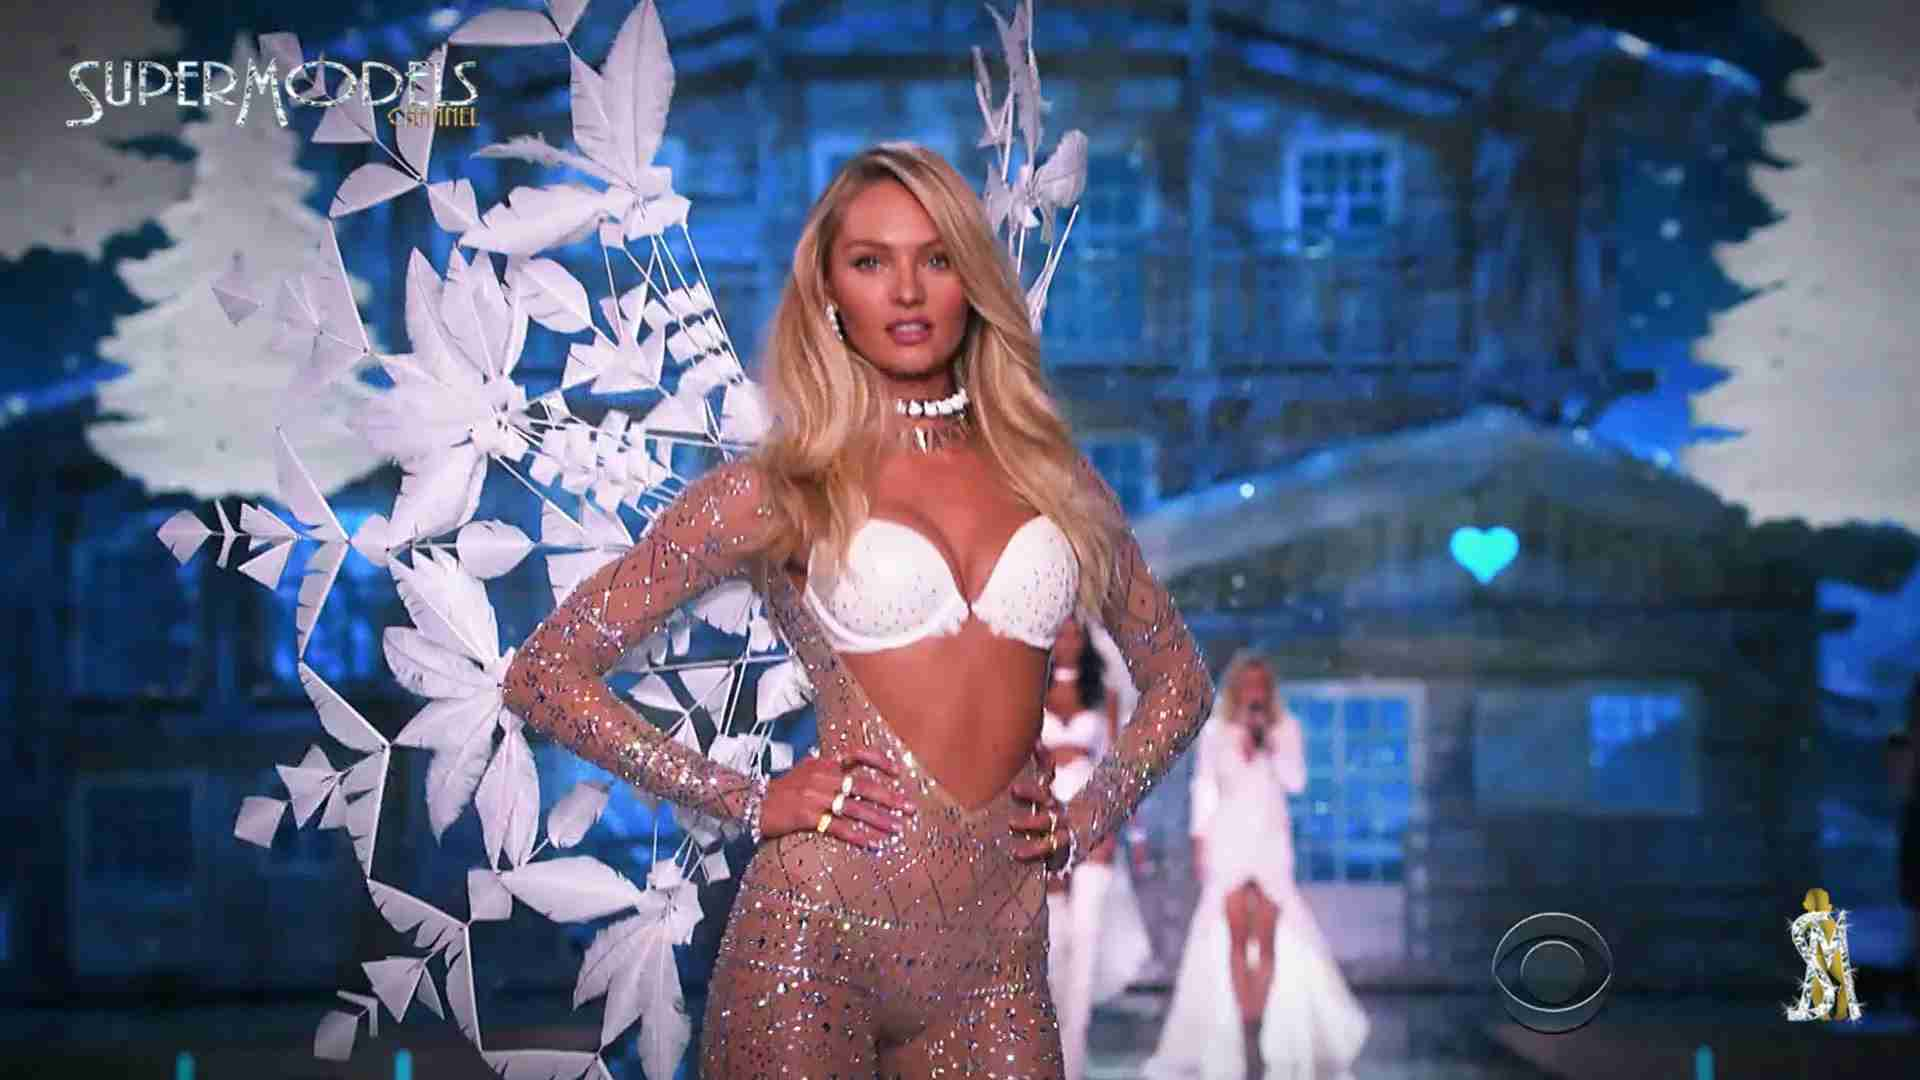 Candice Swanepoel Victoria's Secret Fashion Show 2007 - 2015 by SuperModels Channel - YouTube